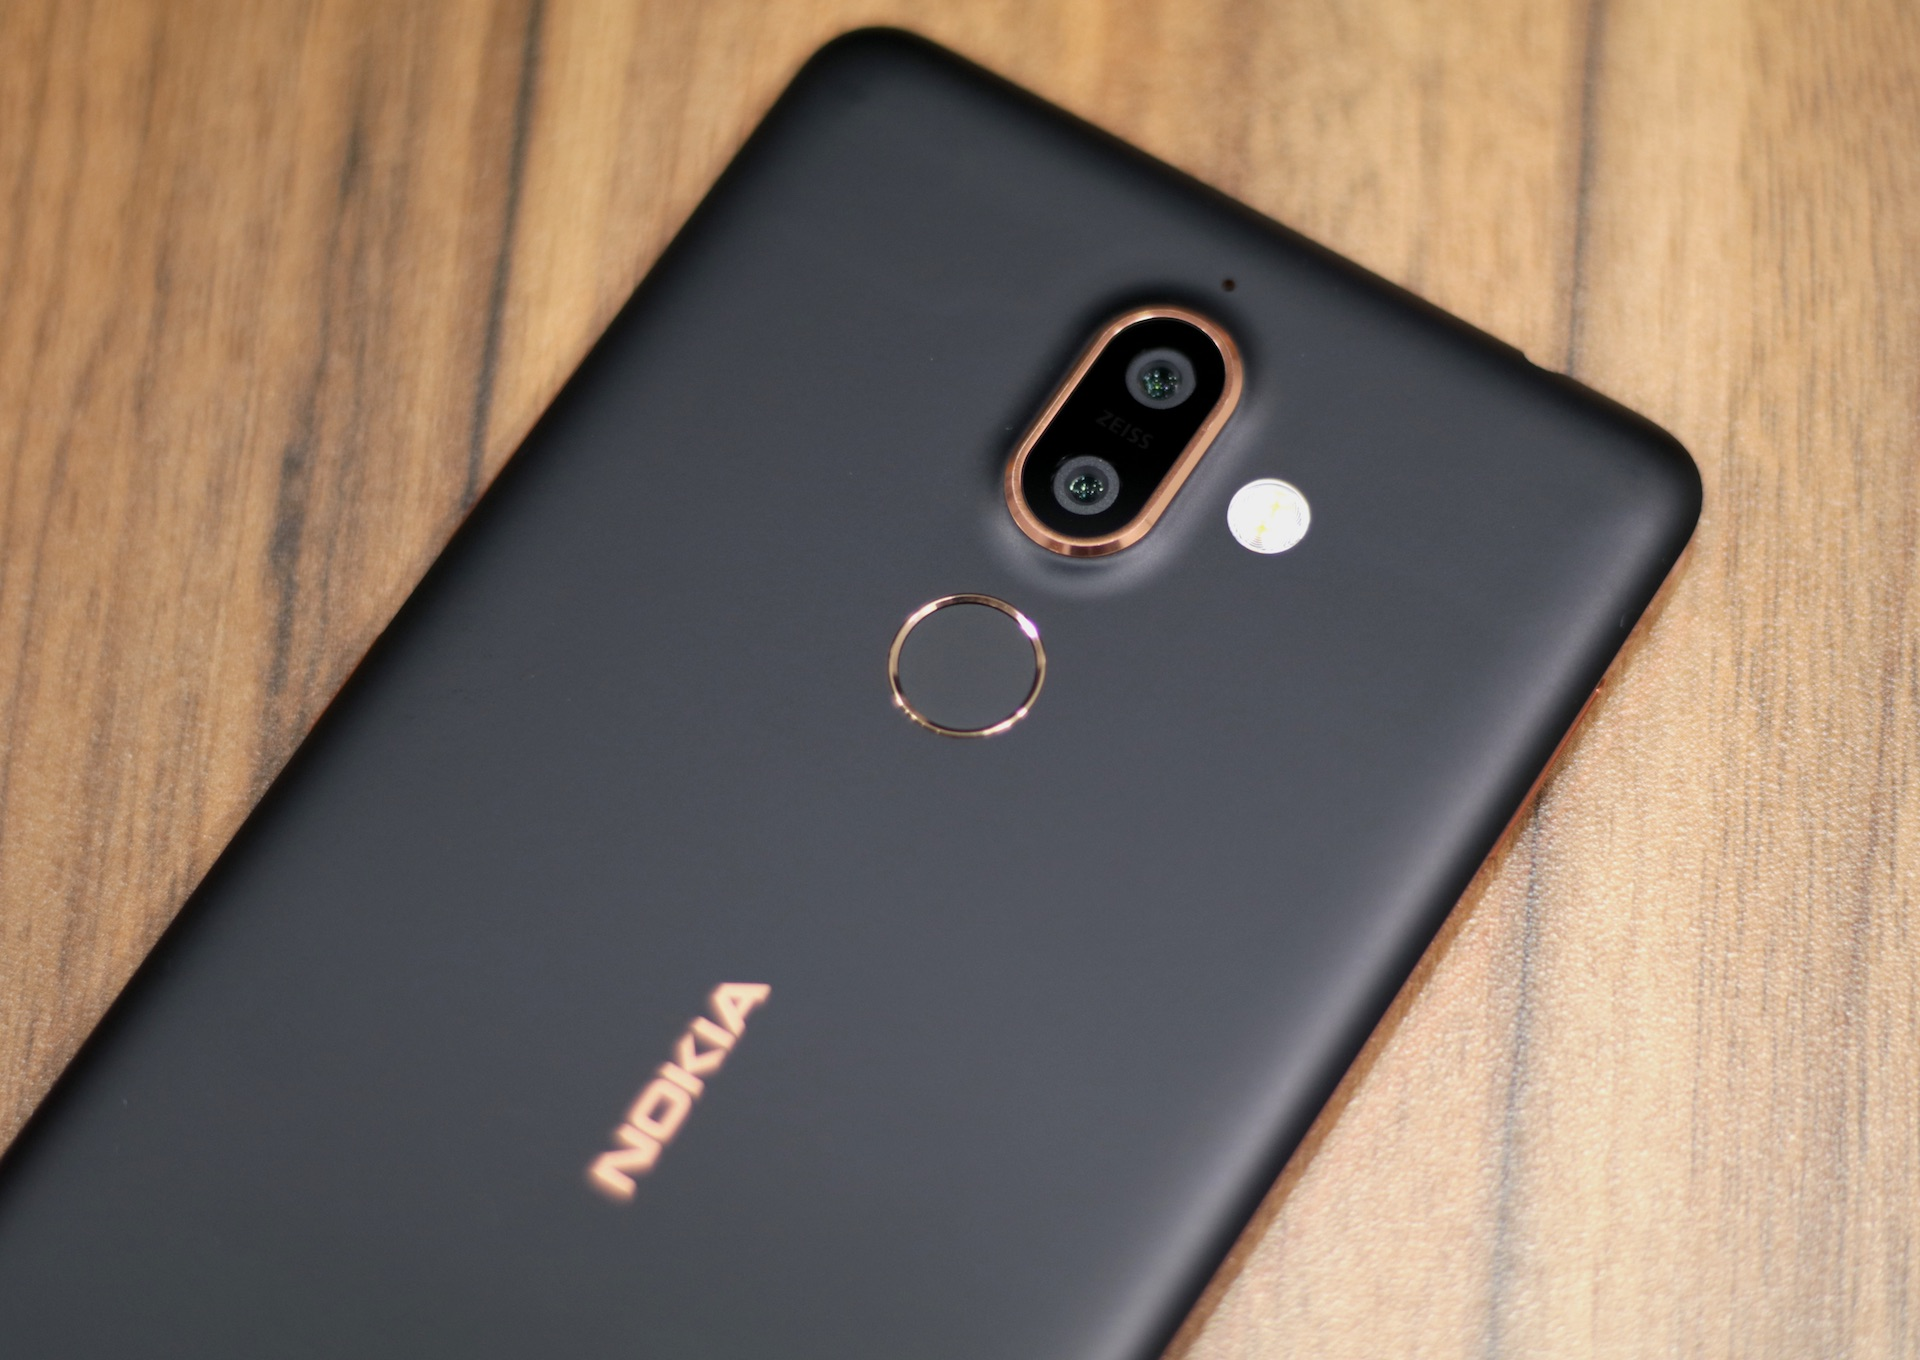 Nokia 7 Plus finally receiving Android 9 Pie update